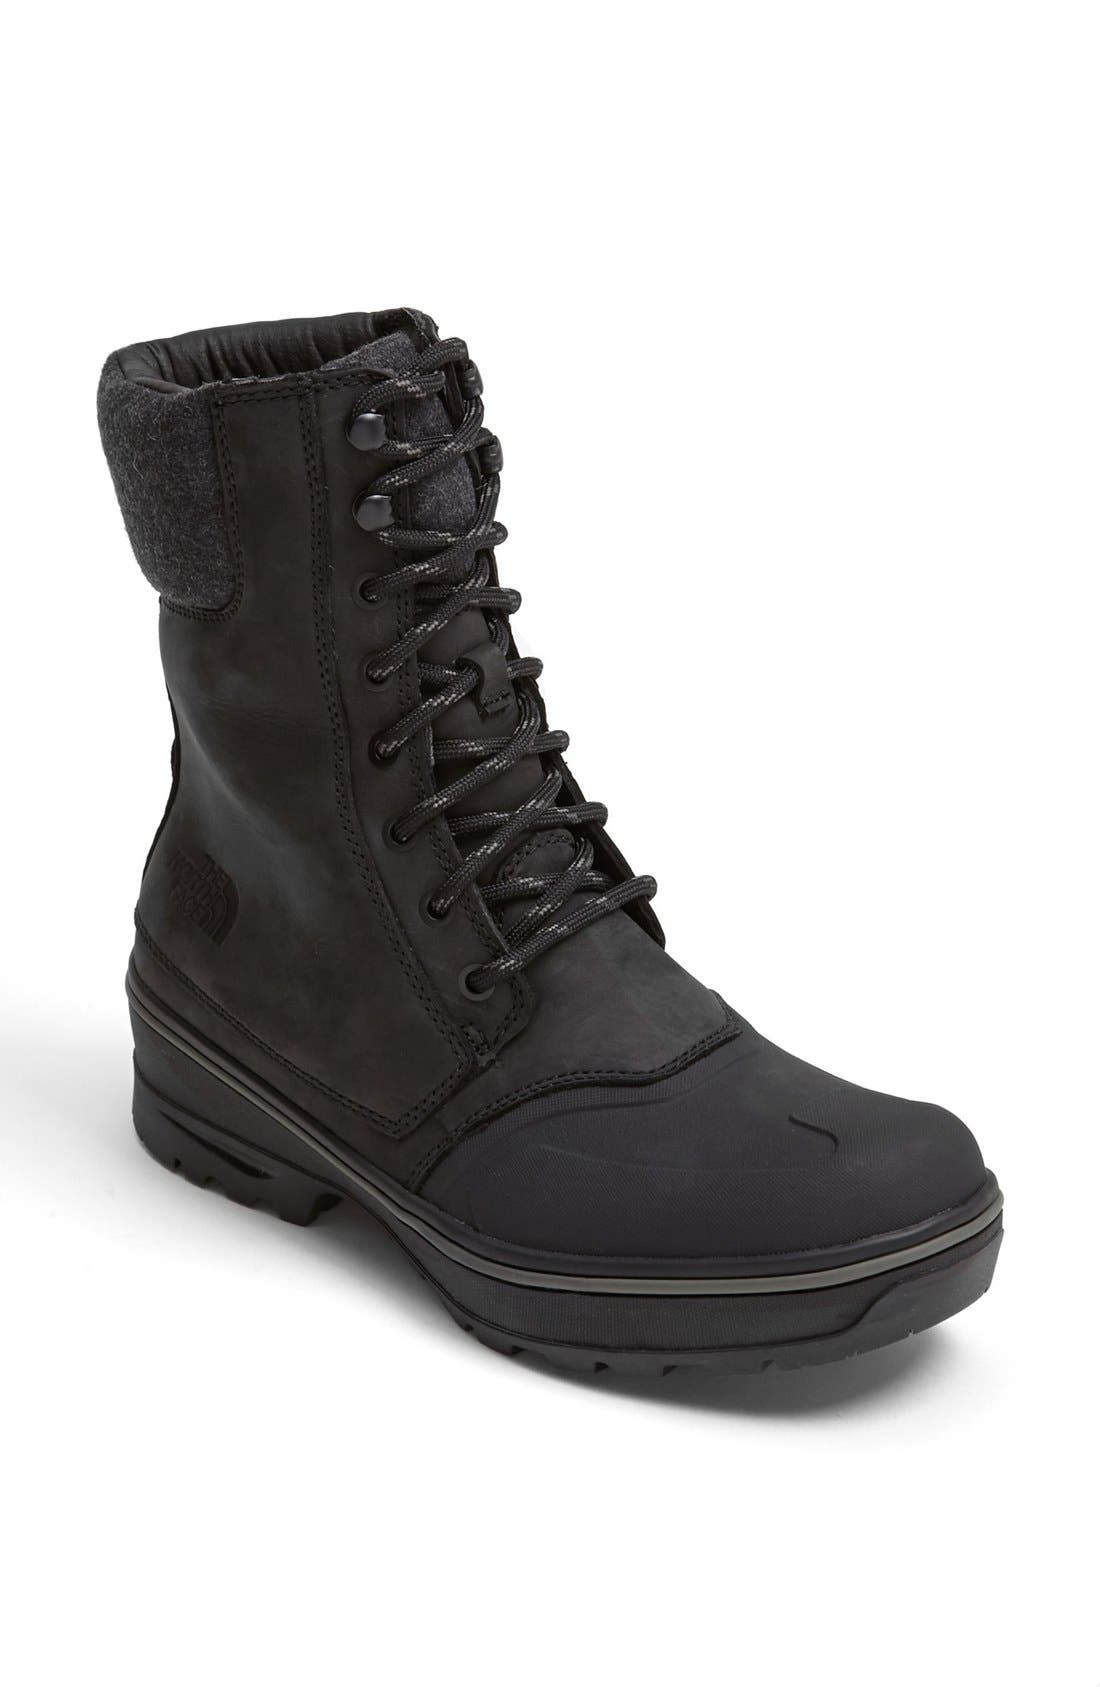 Alternate Image 1 Selected - The North Face 'Shellisto' Snow Boot